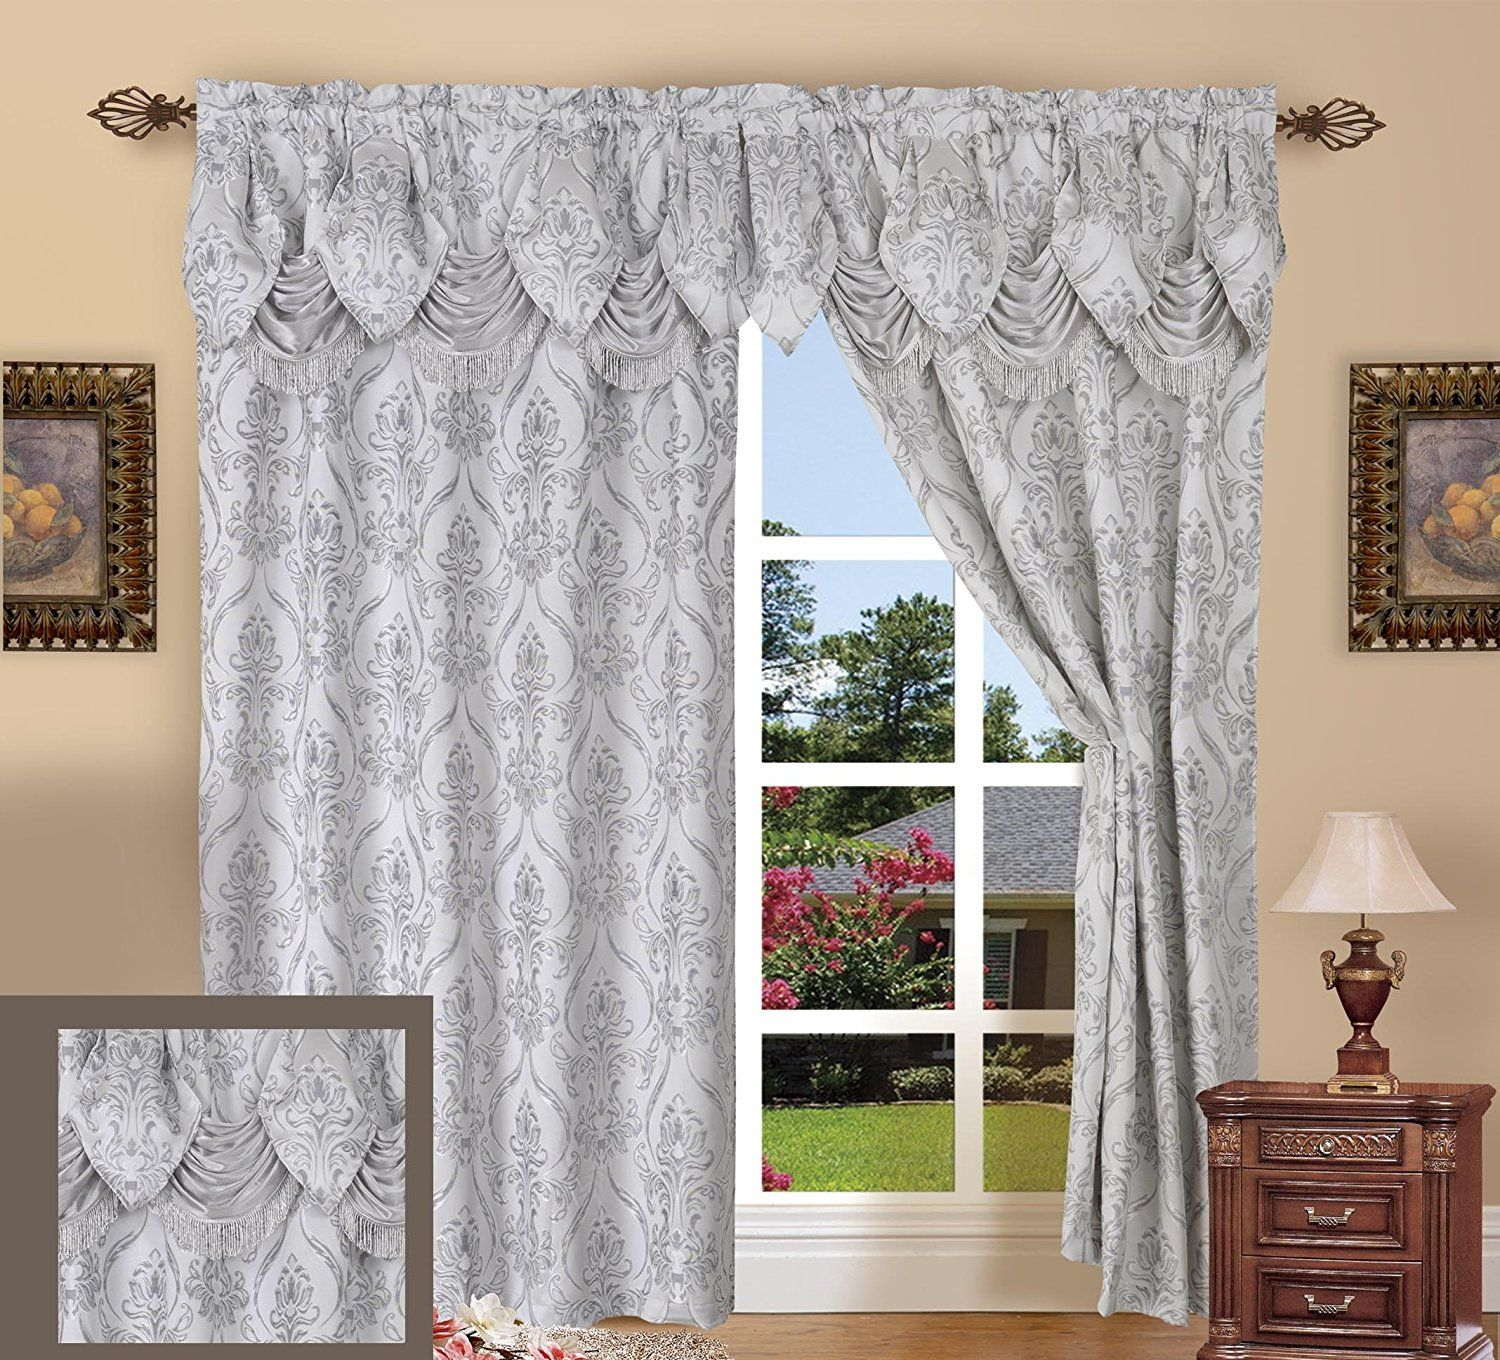 Elegance Linen Luxury Jacquard Curtain Panel Set With